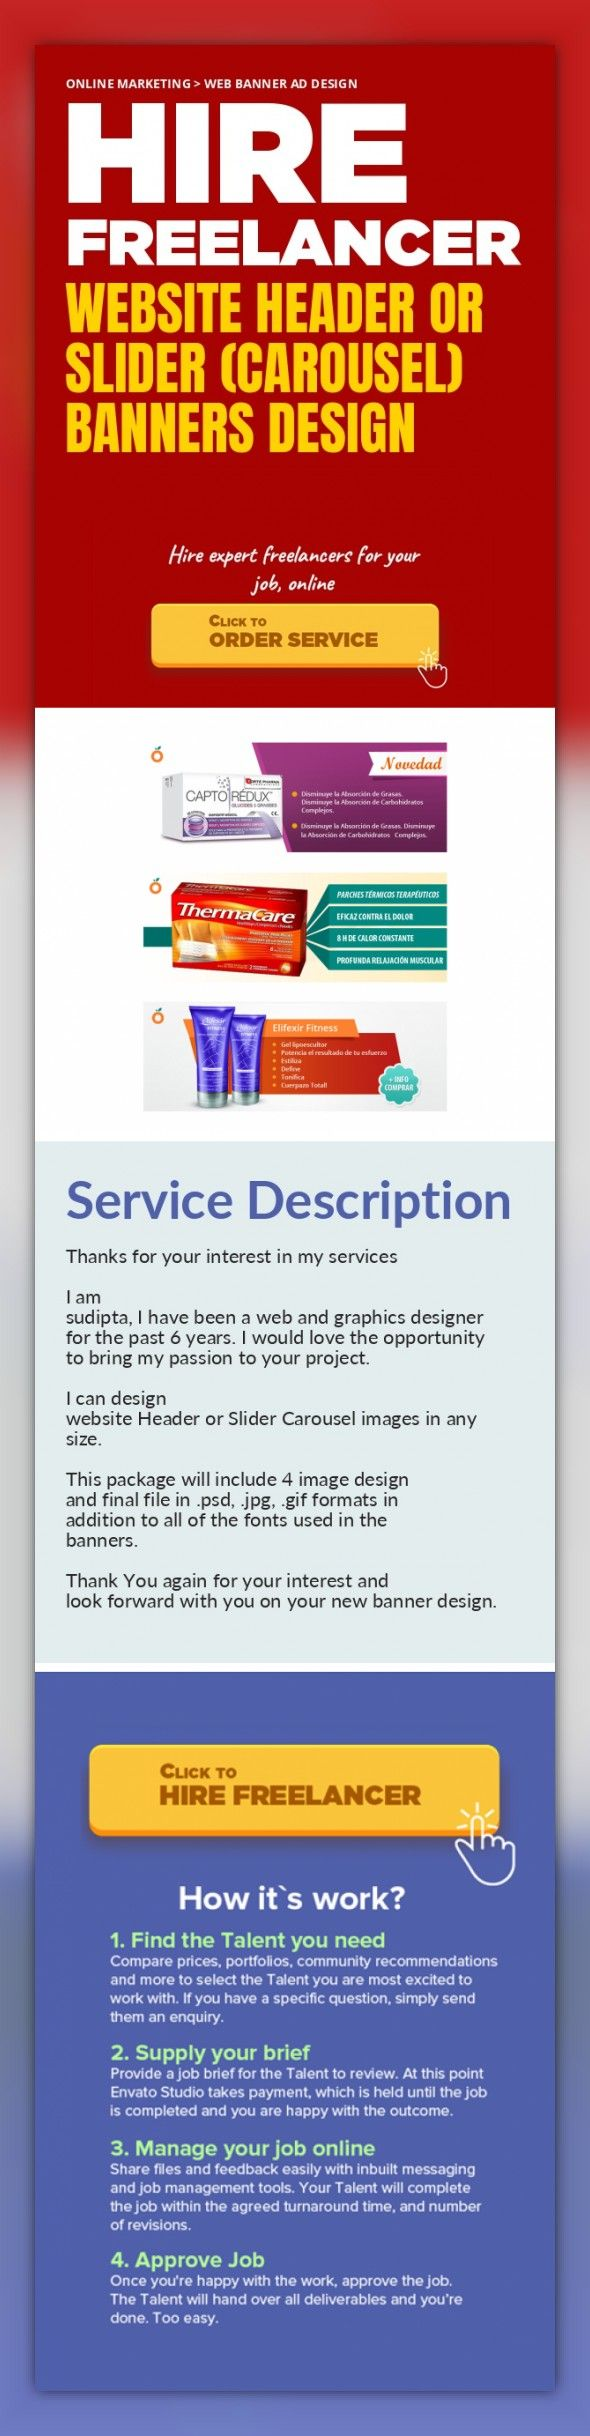 Website Header or Slider (Carousel) Banners Design Online Marketing, Web Banner Ad Design   Thanks for your interest in my services    I am sudipta, I have been a web and graphics designer for the past 6 years. I would love the opportunity to bring my passion to your project.    I can design website Header or Slider Carousel images in any size.    This package will include 4 image design and final...